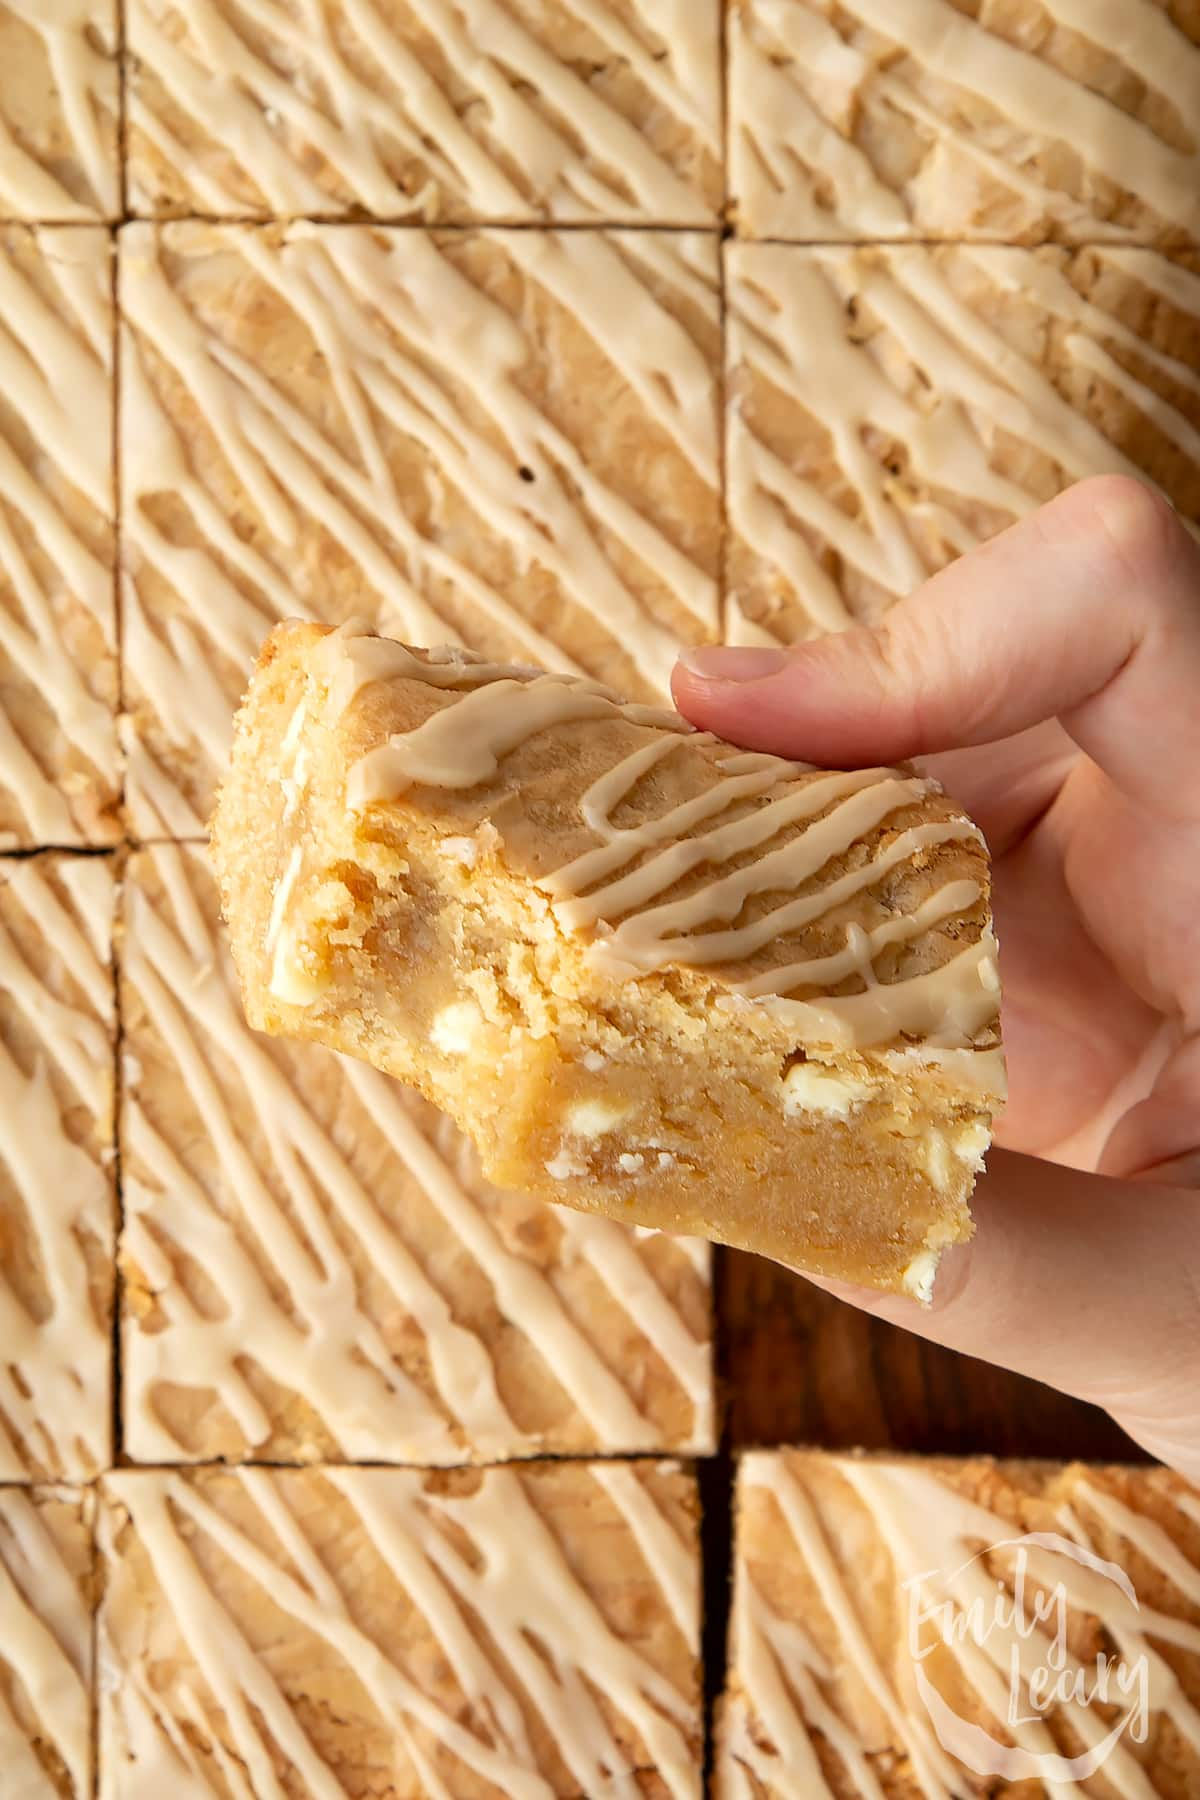 Hand holding a square of Baileys blondie with a bite out of it above more blondies.